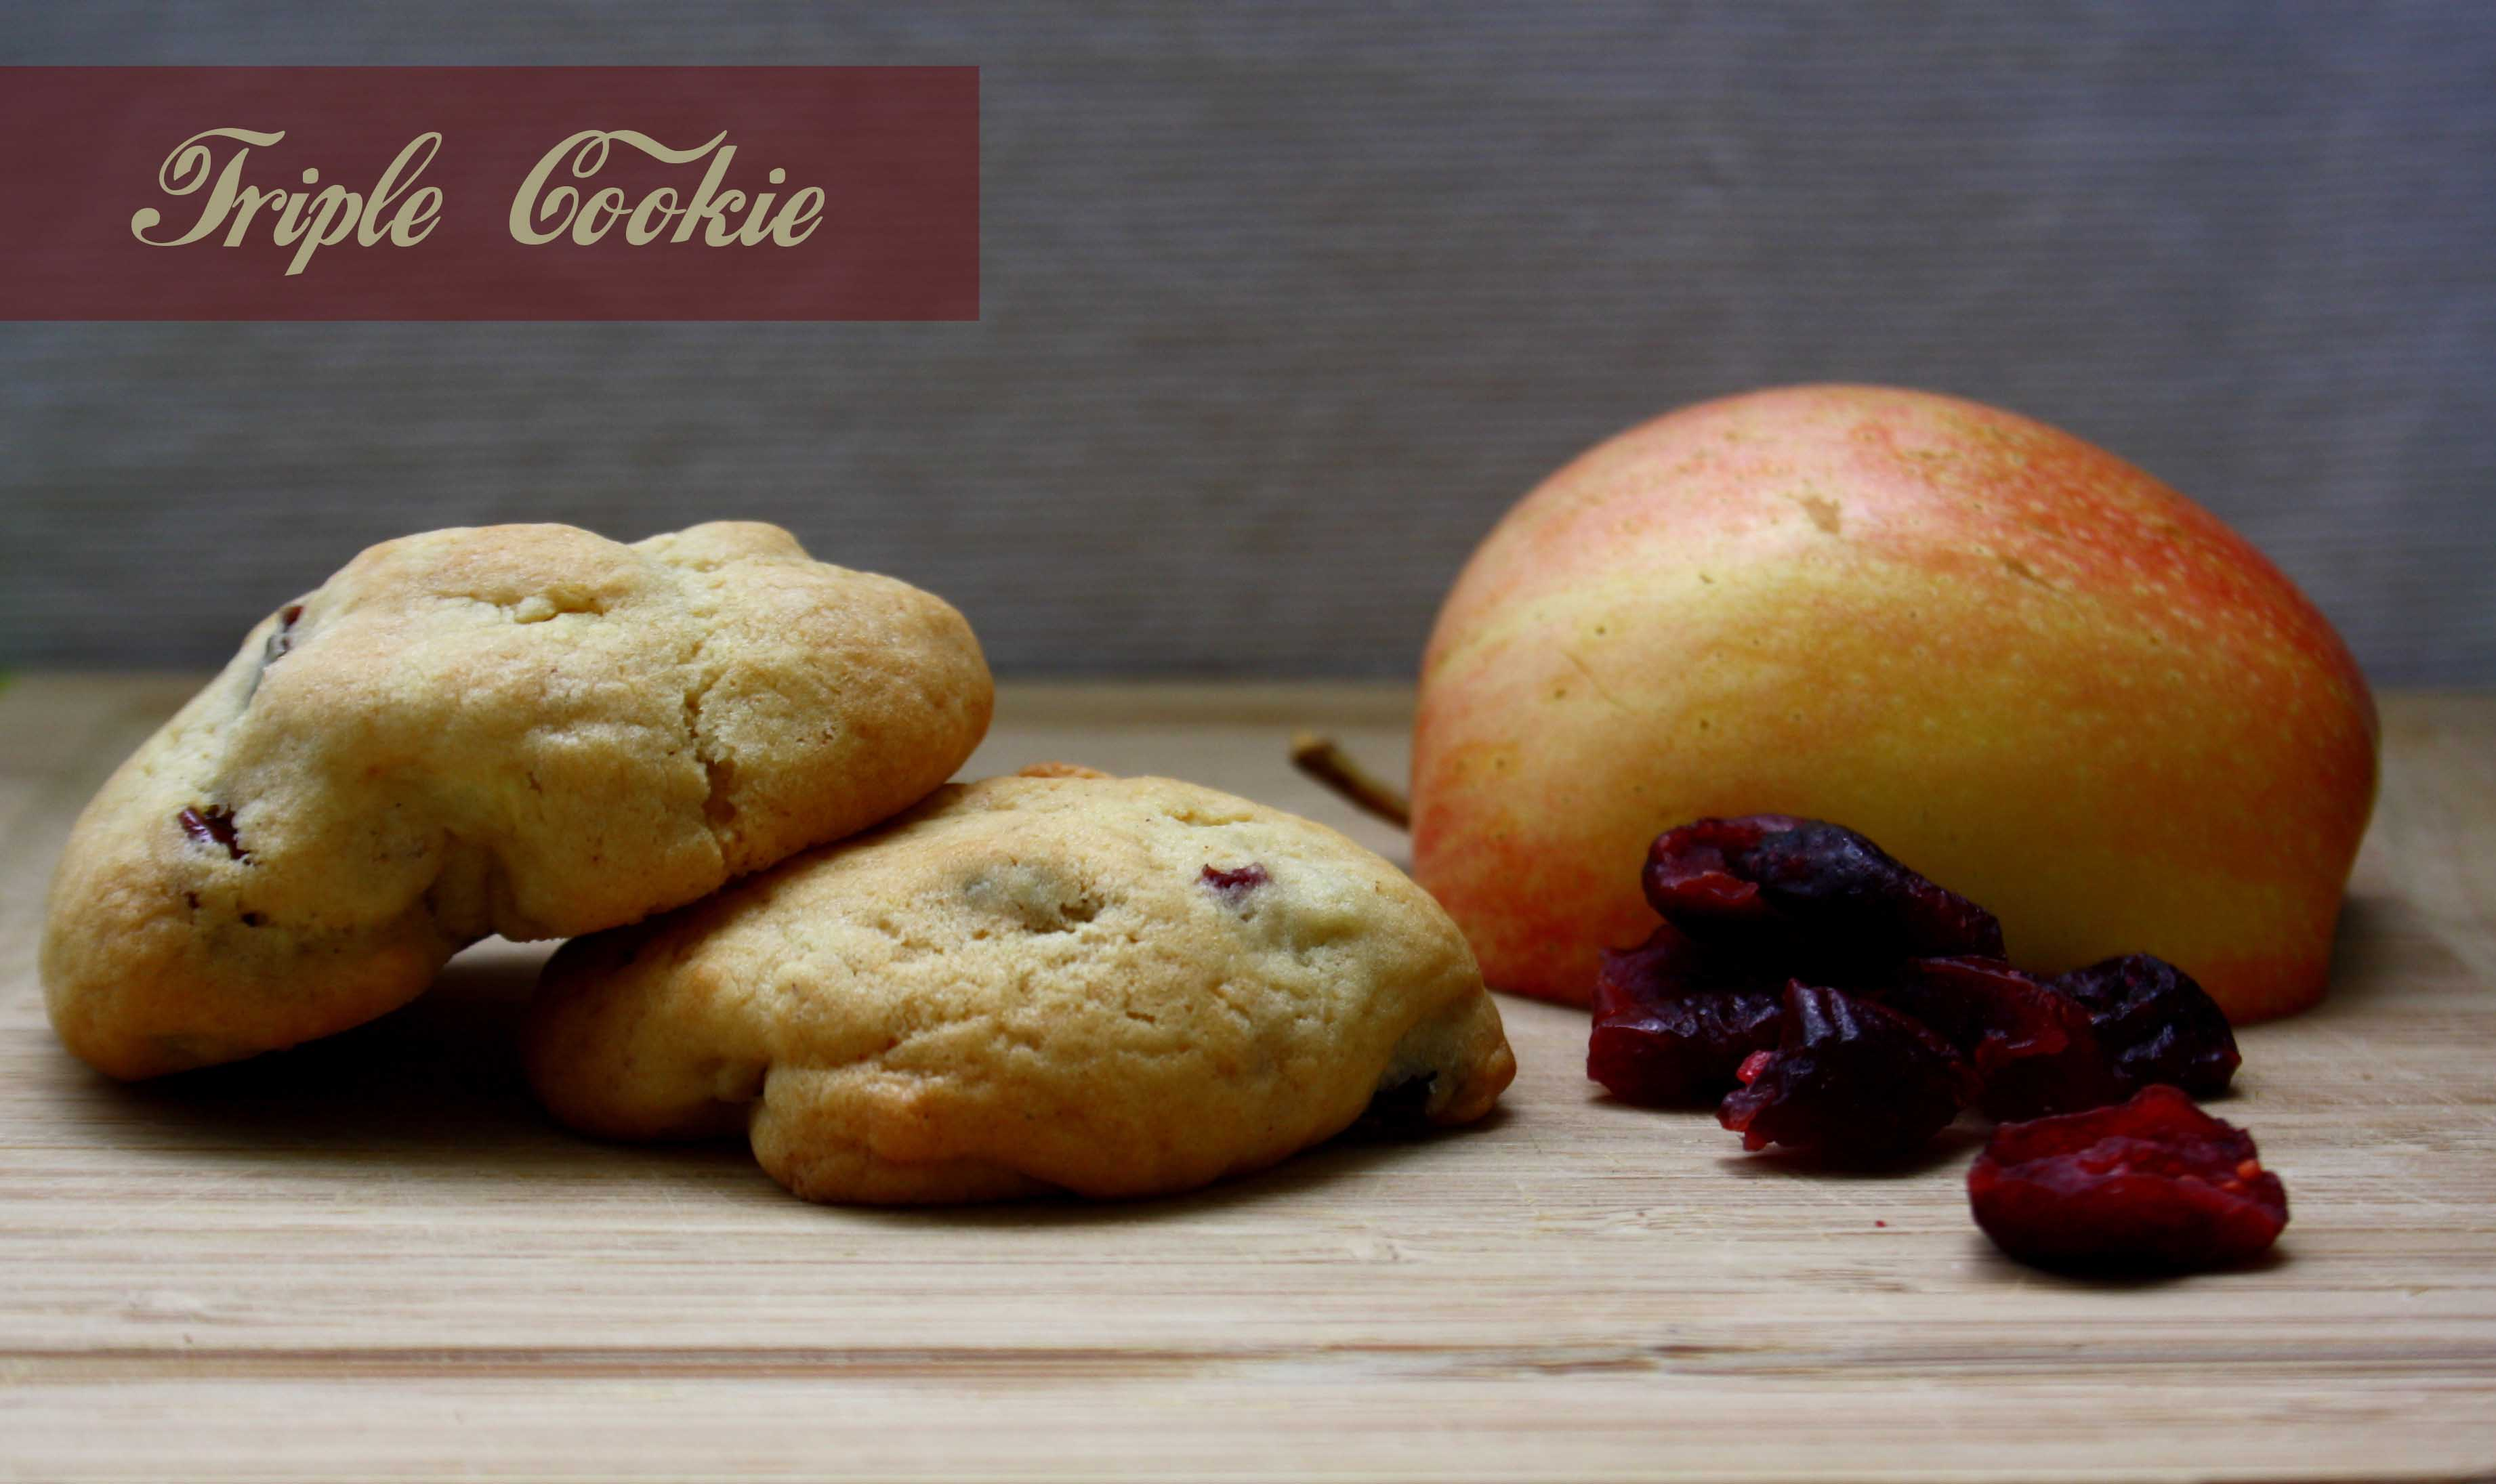 Apfel Cranberry Cookies by http://babyrockmyday.com/apfel-cranberry-cookies/